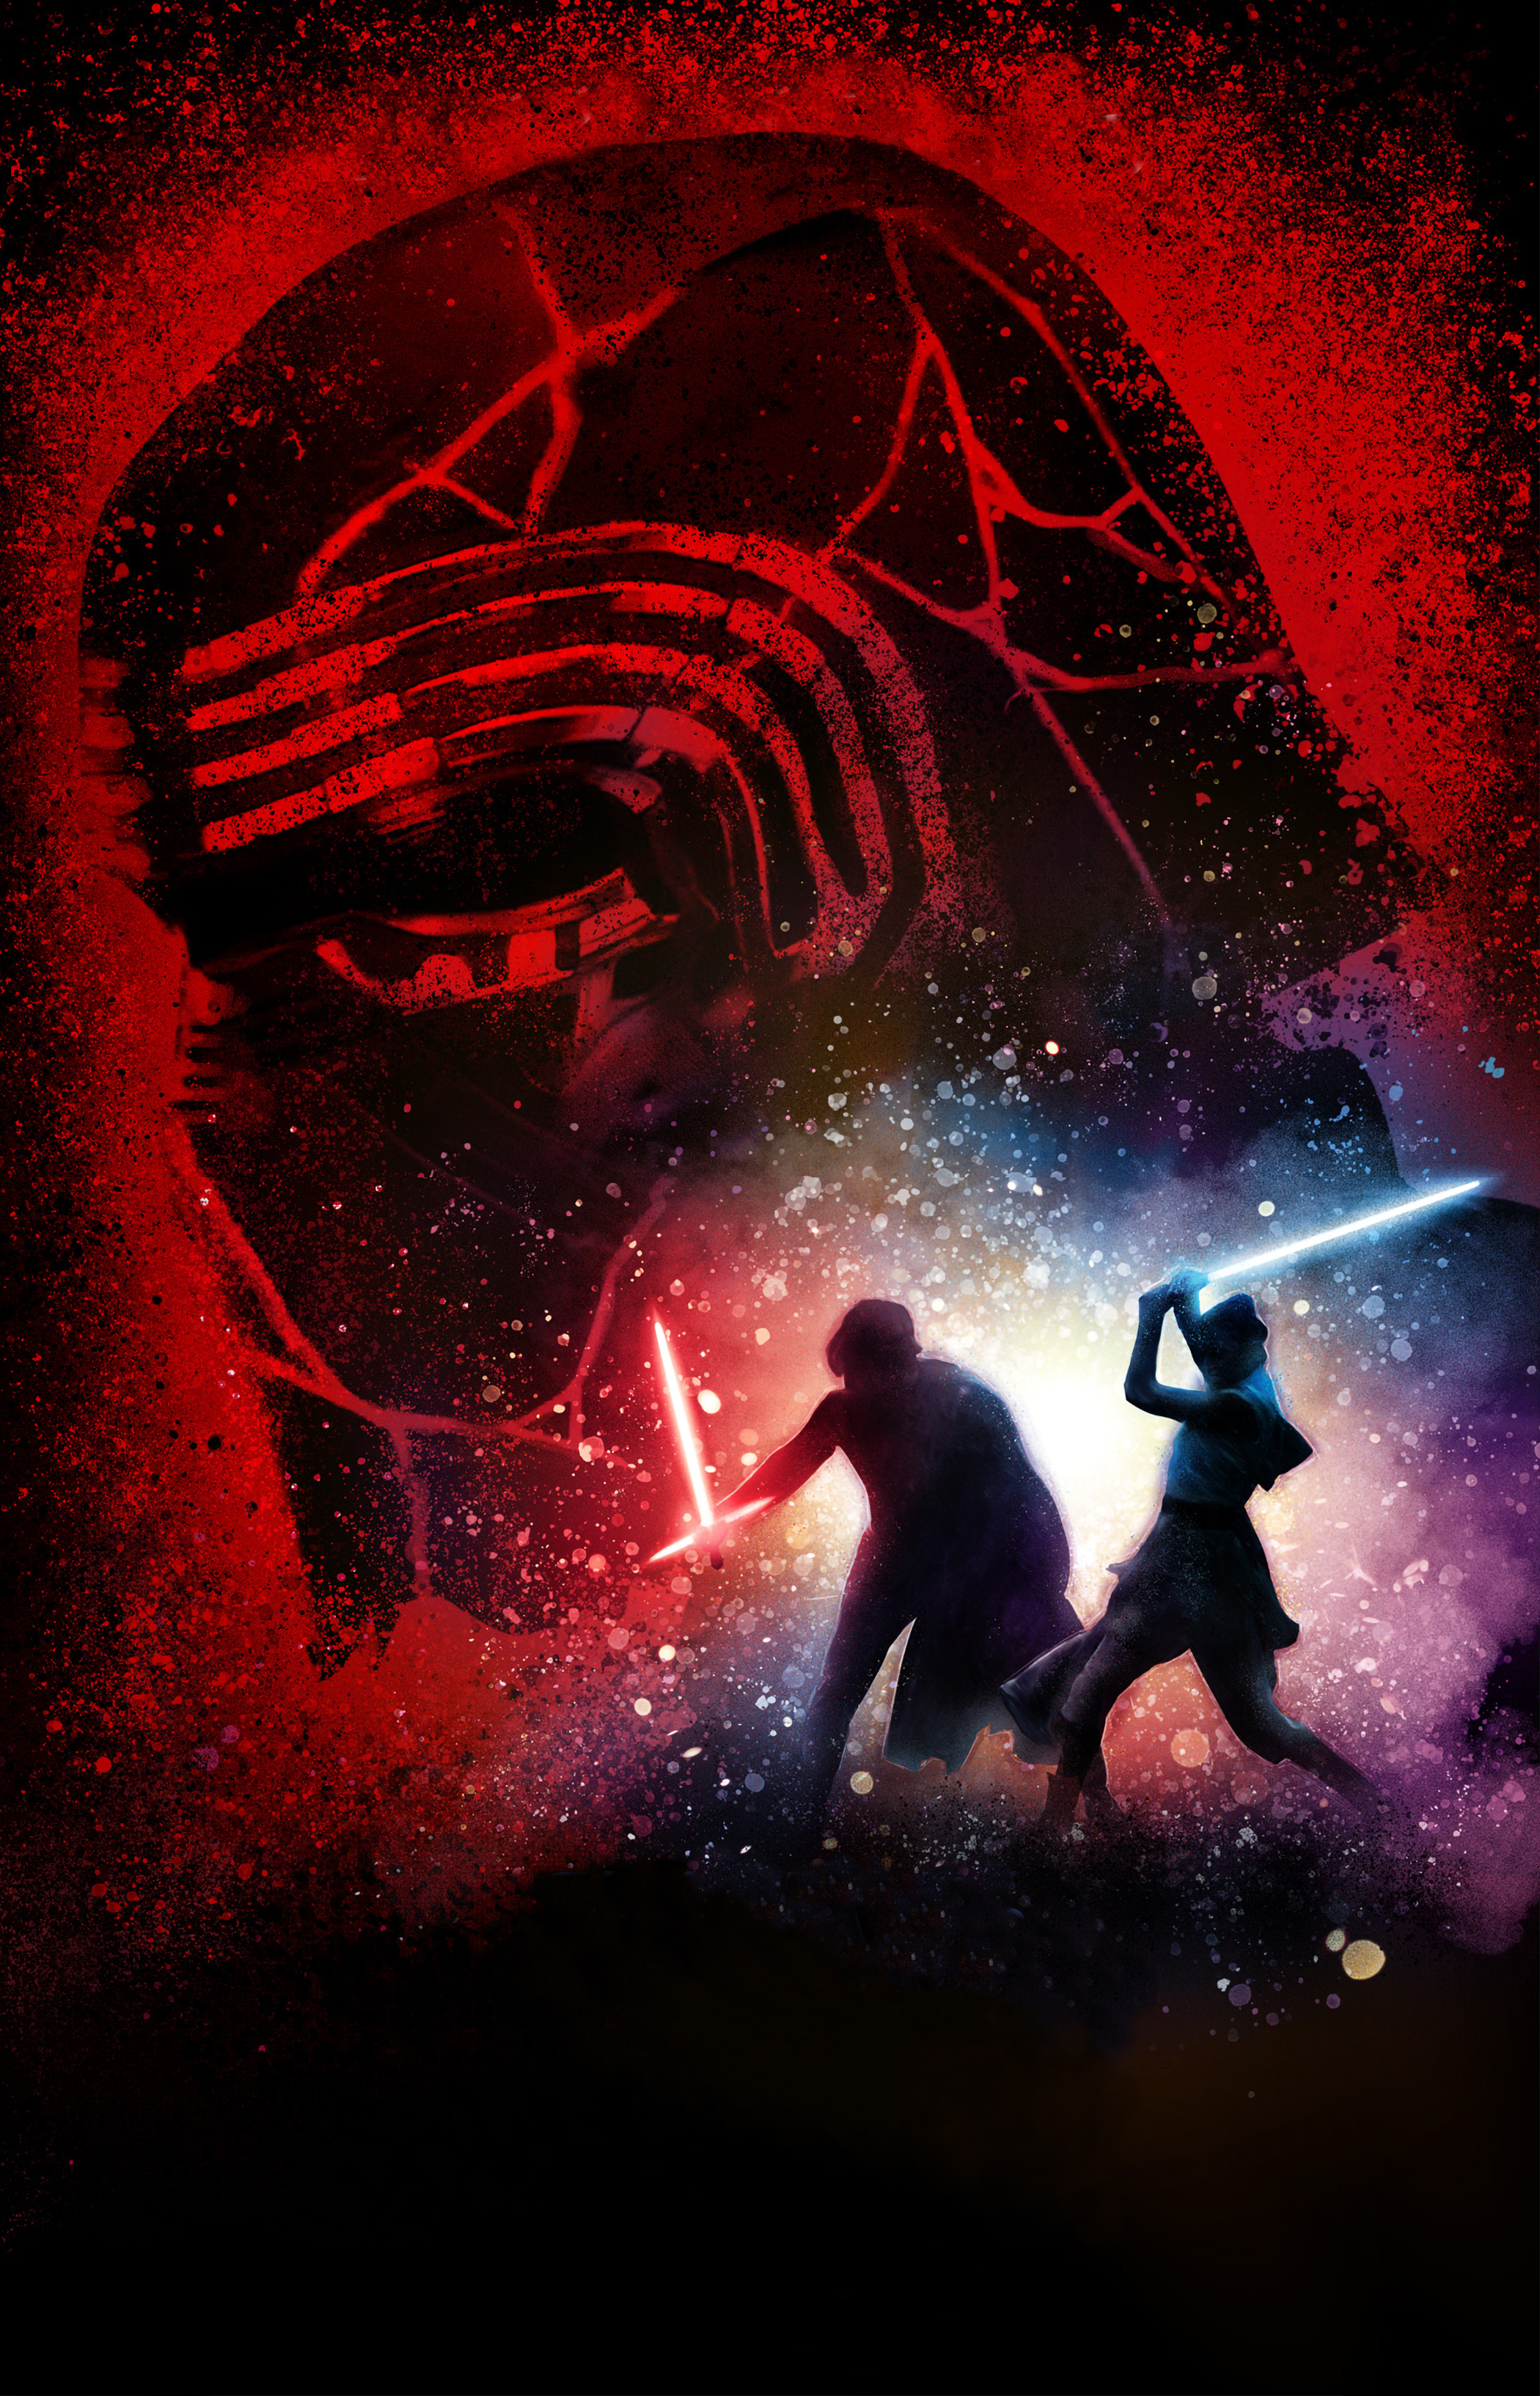 1280x1024 Poster Of Star Wars 9 1280x1024 Resolution